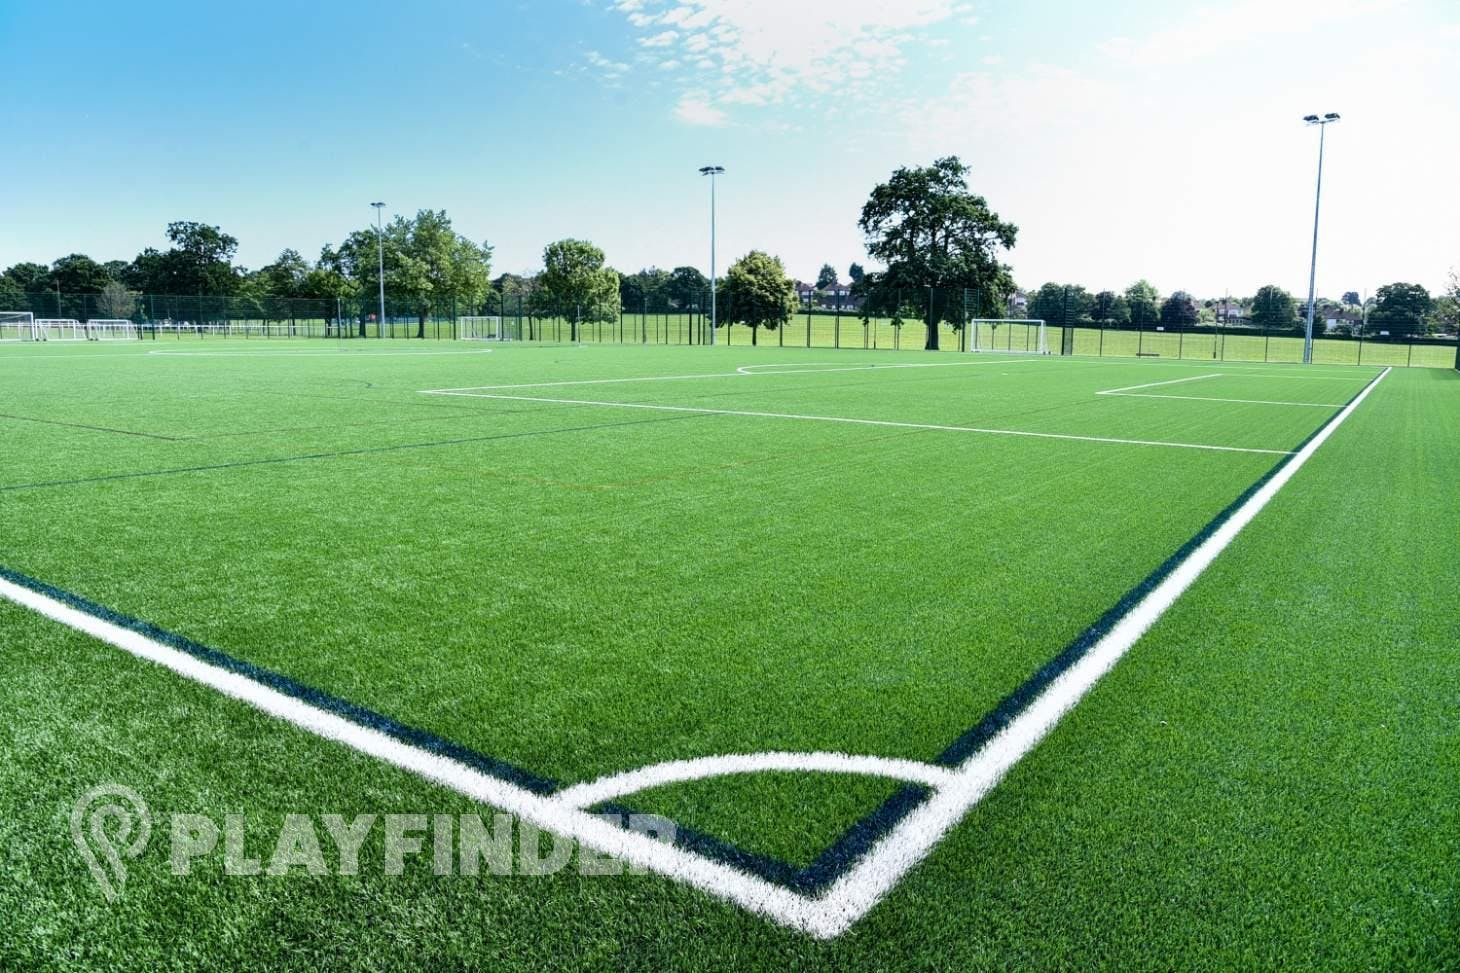 Barnet Lane 3G Pitch 7 a side | 3G Astroturf football pitch